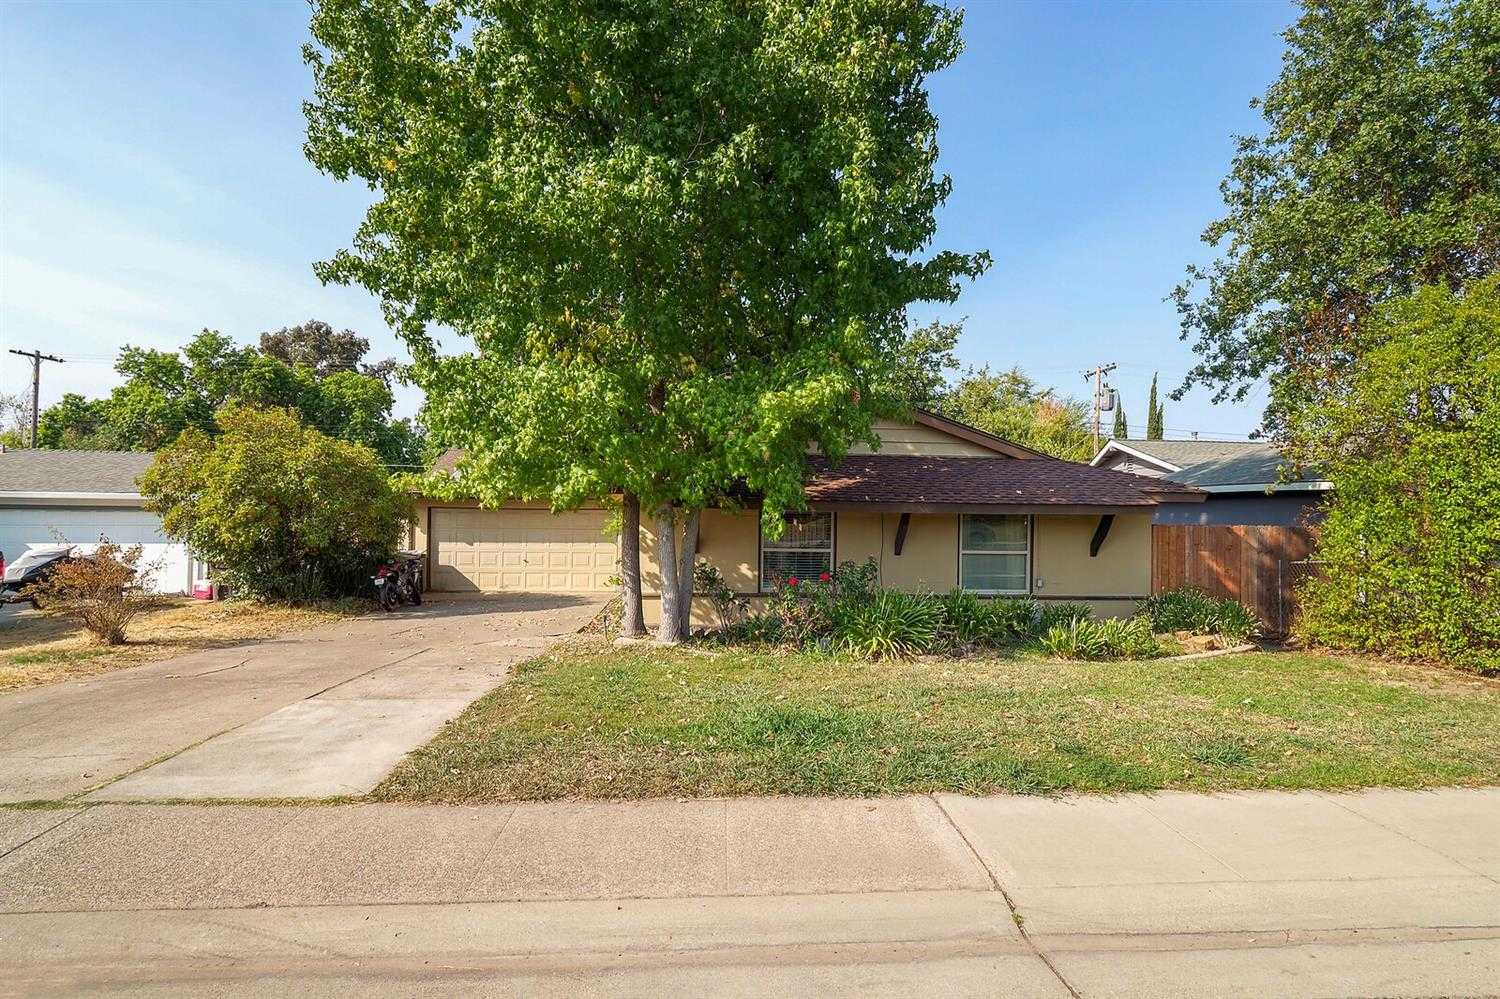 6717 Outlook Dr Citrus Heights, CA 95621